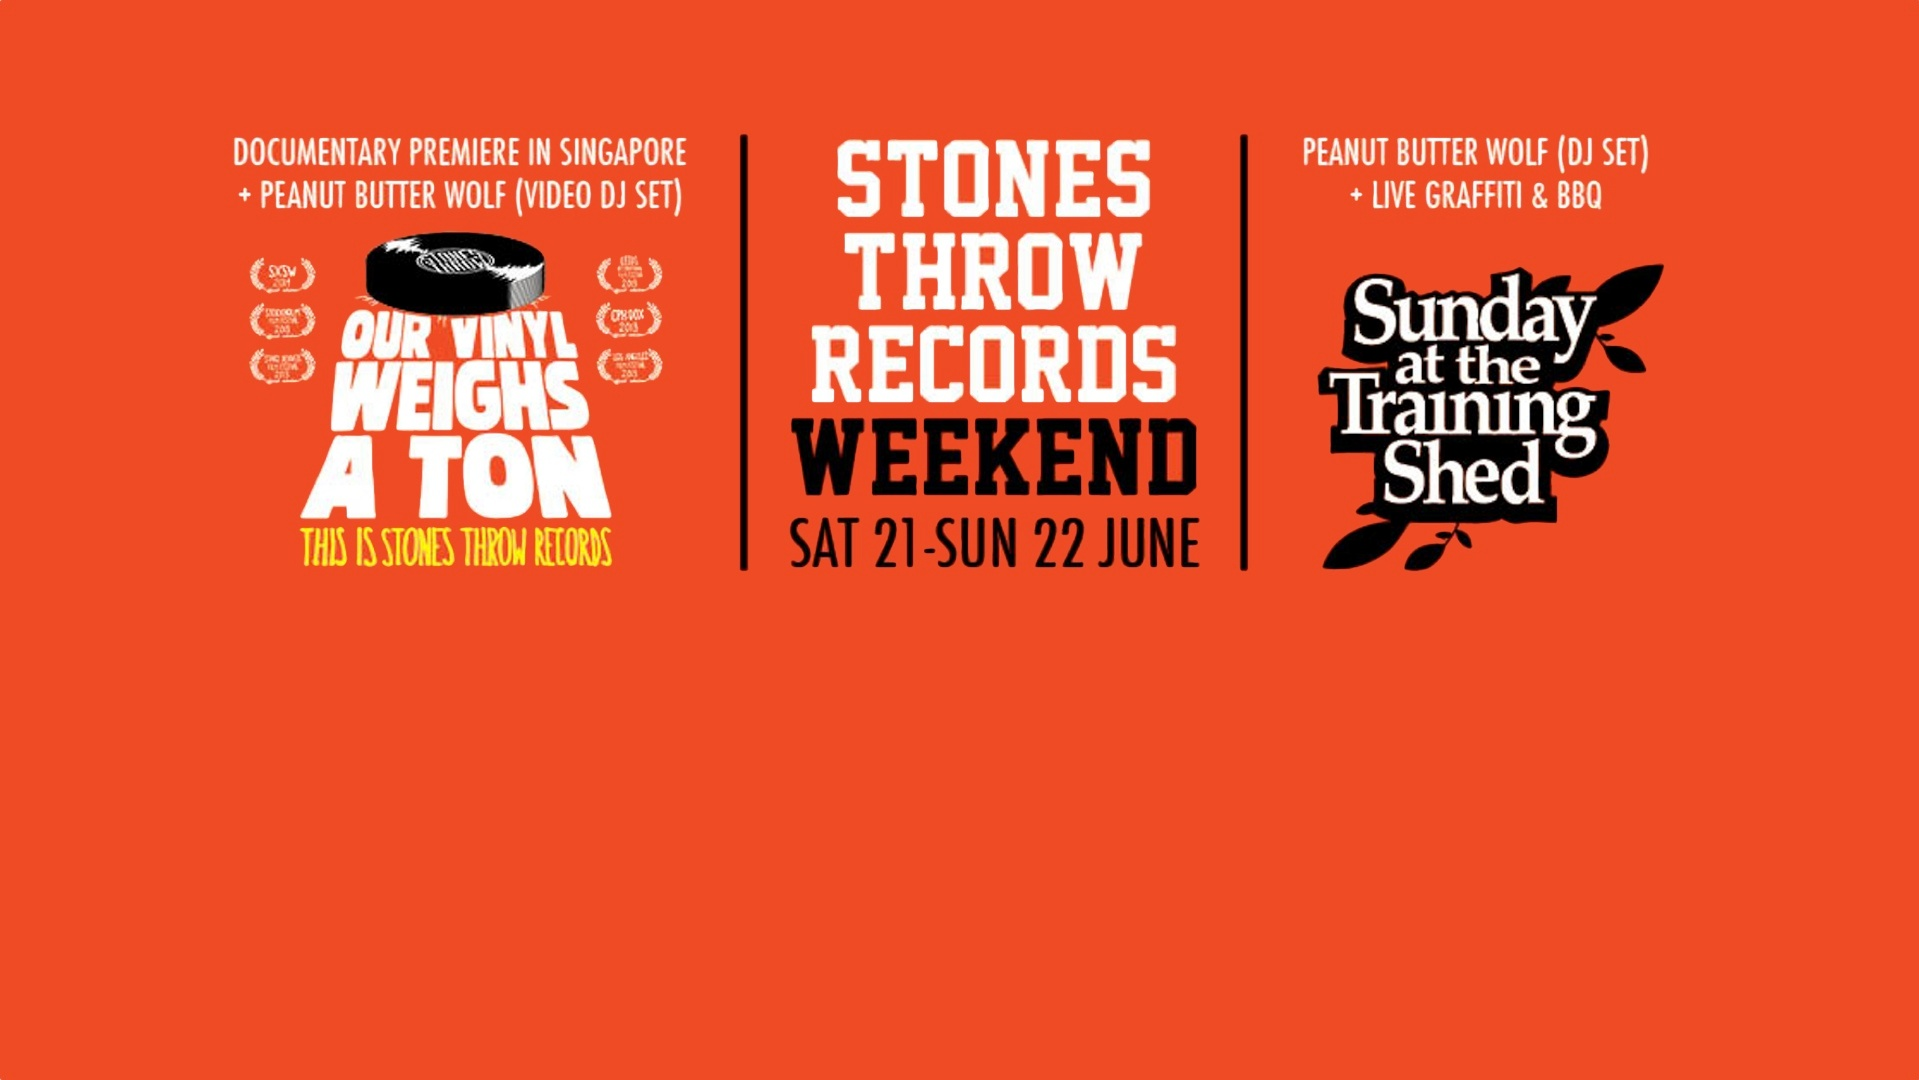 Stones Throw Records Weekend Pt 2